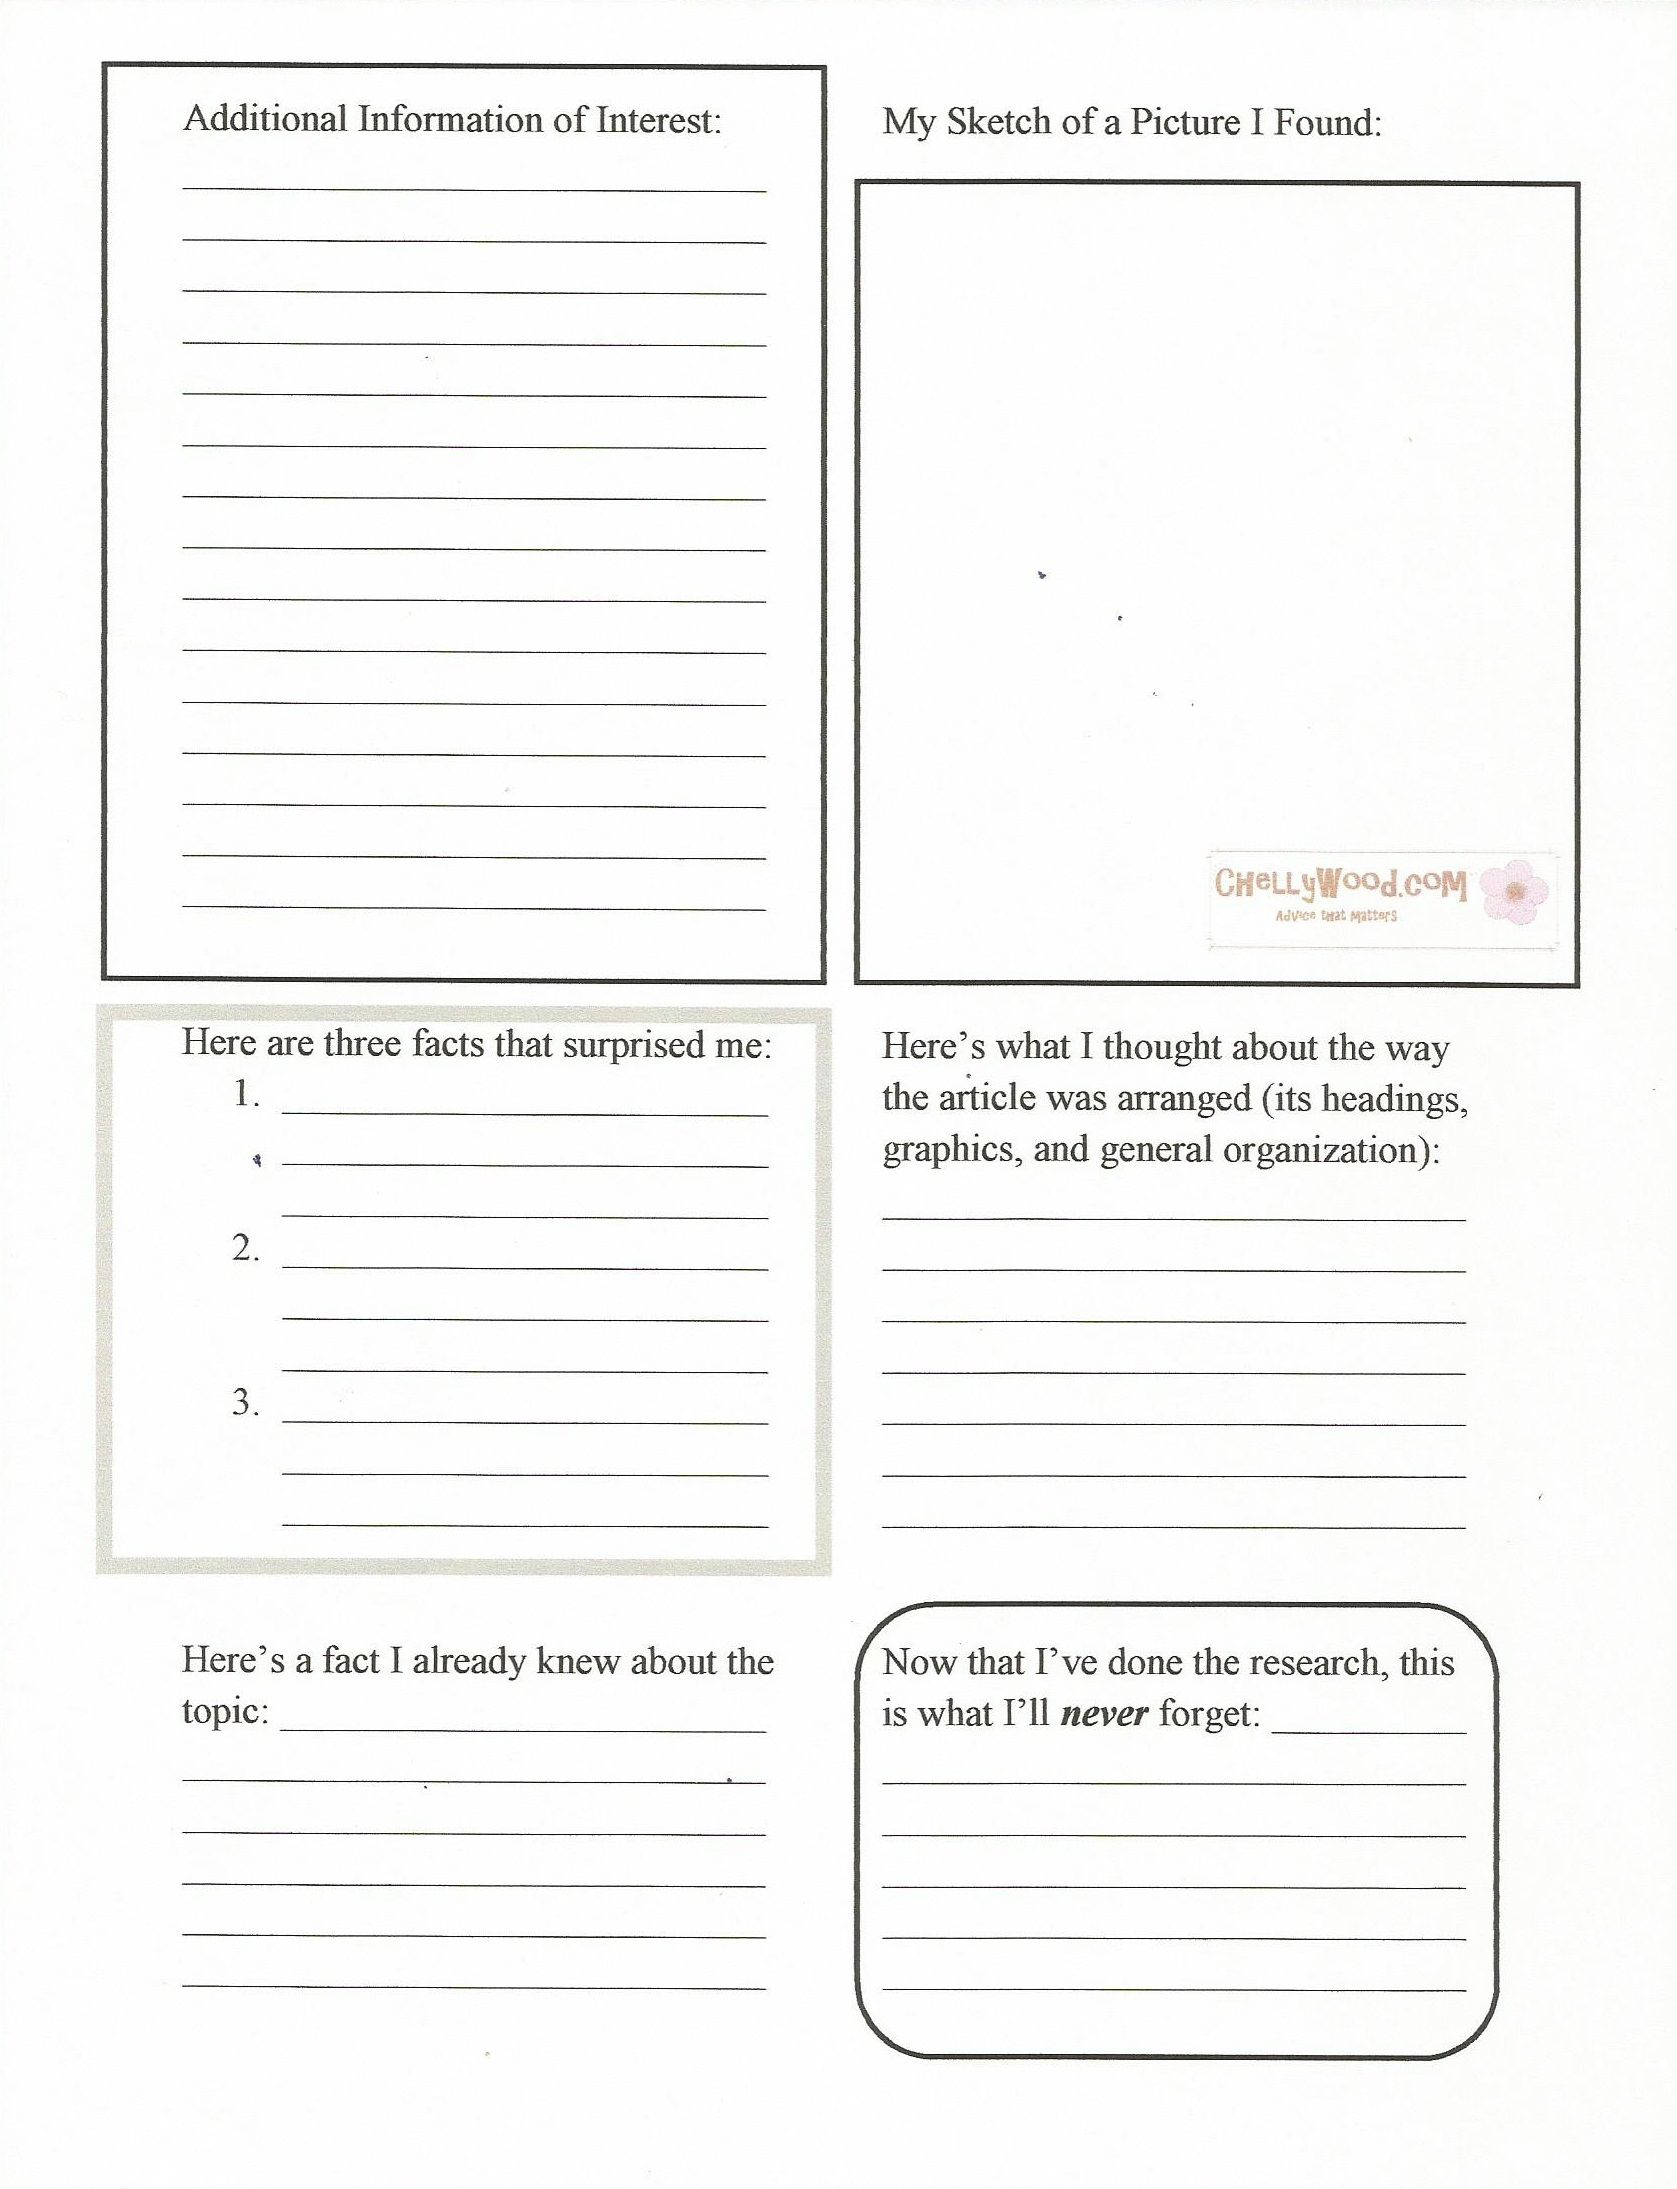 Worldbook Research Worksheet For Middle Schoolers Pg 2 Comes From My Englishemporium Wordpress